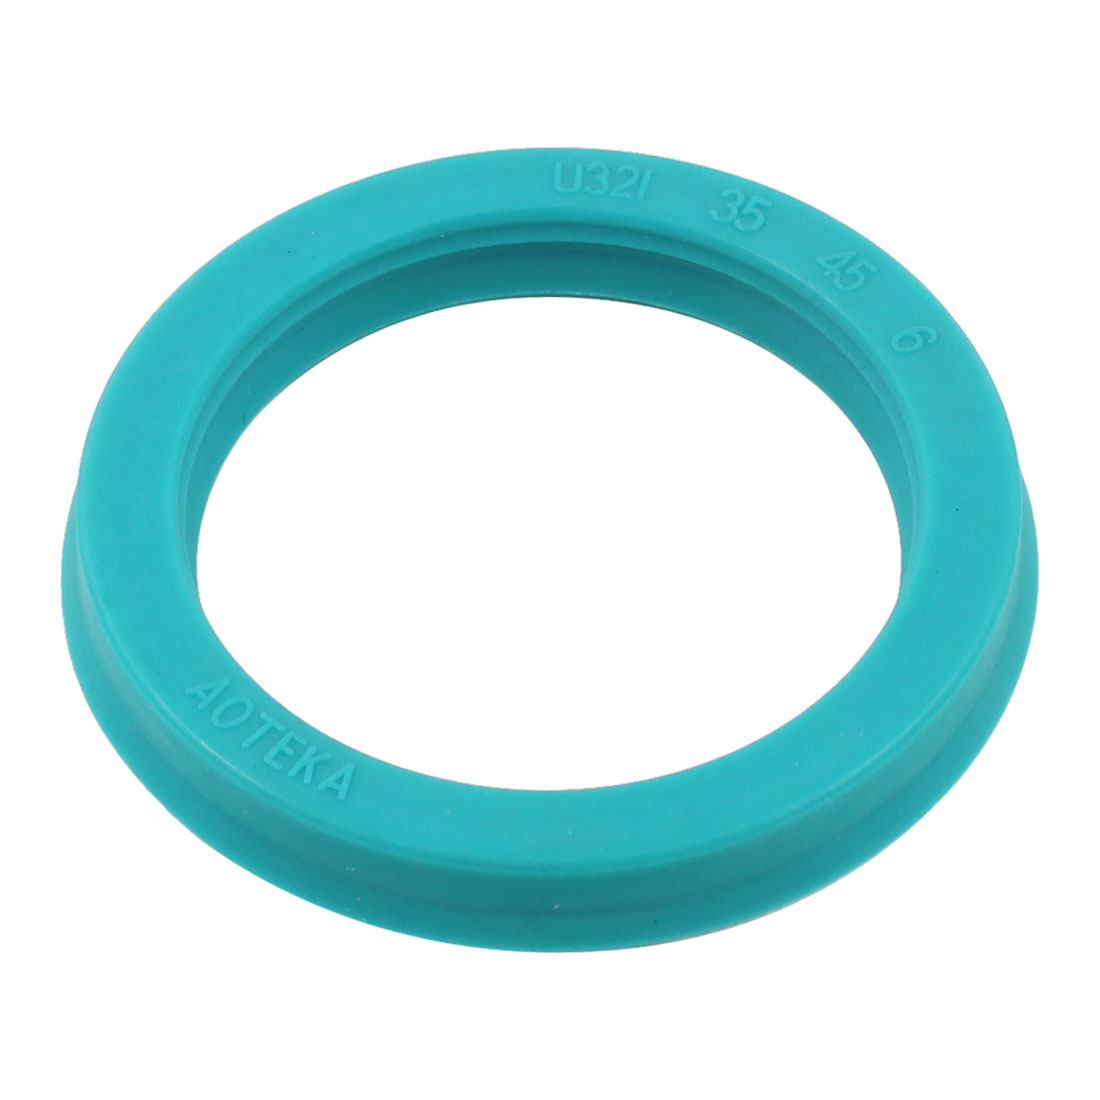 PU Single Lip Metric U Cup Oil Seal 35mm x 45mm x 7mm U32i for Piston Rod